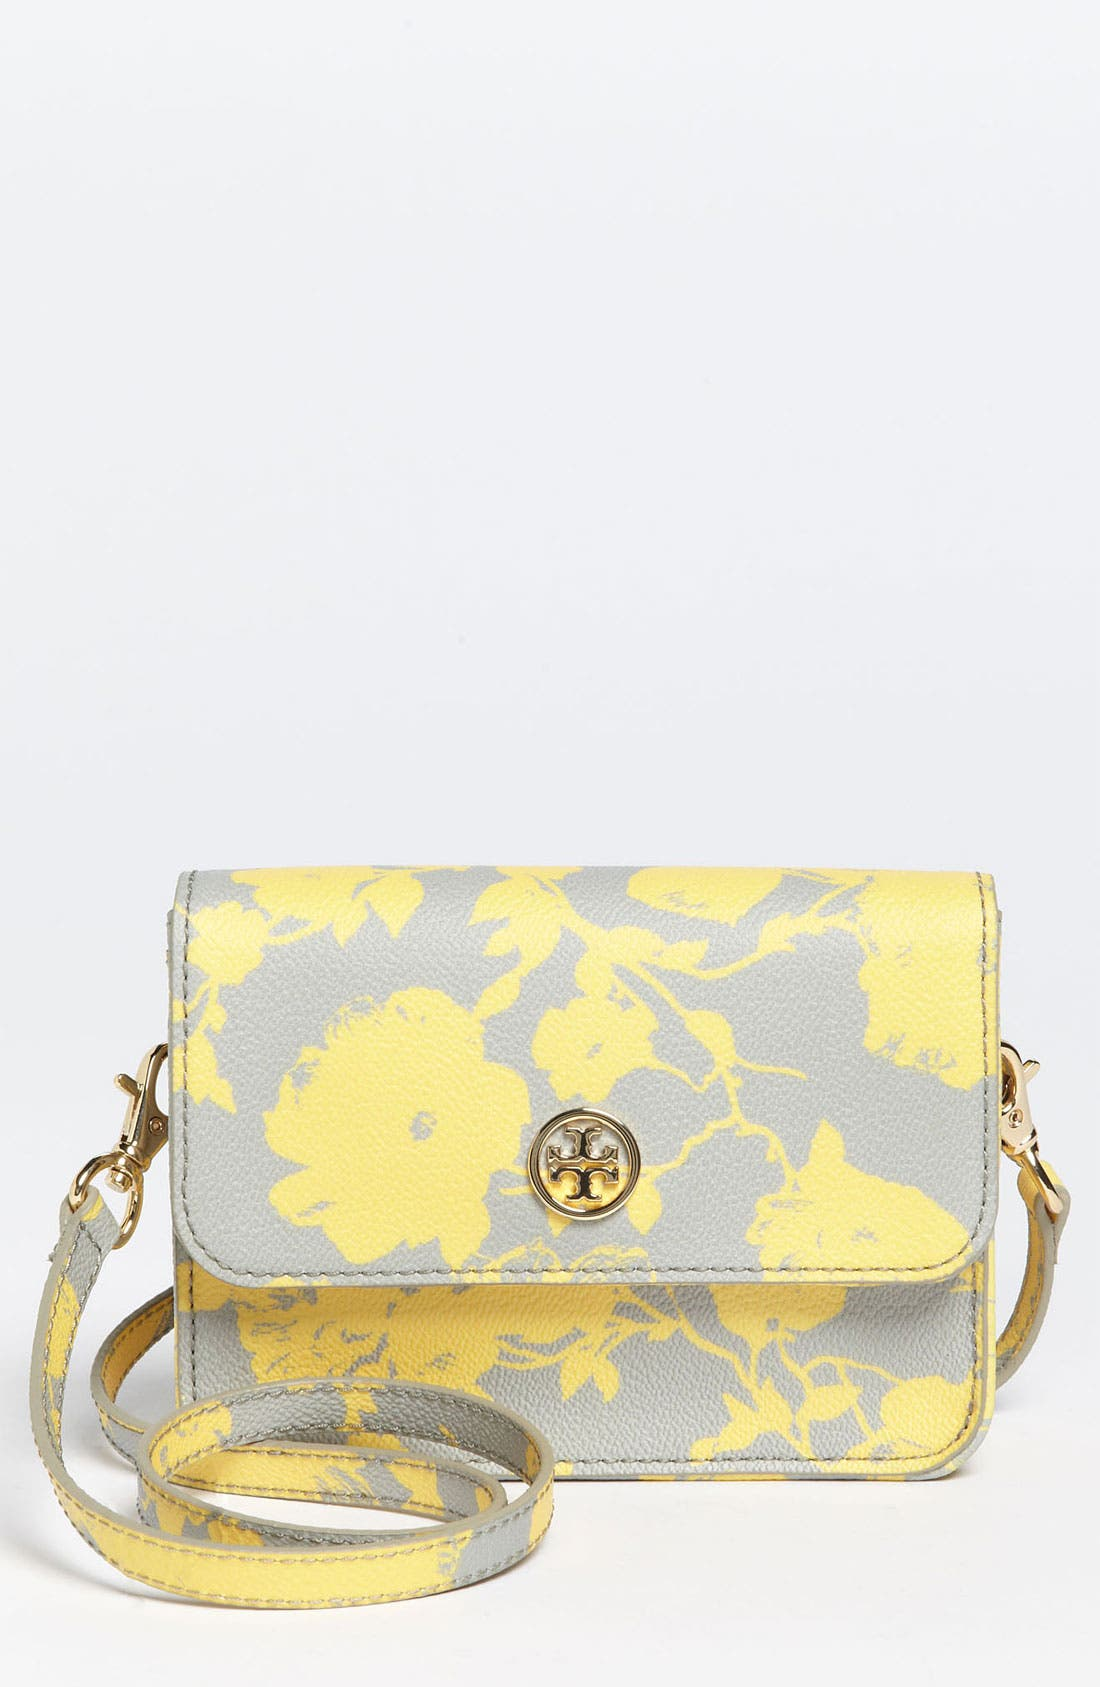 Alternate Image 1 Selected - Tory Burch 'Robinson - Mini' Crossbody Bag